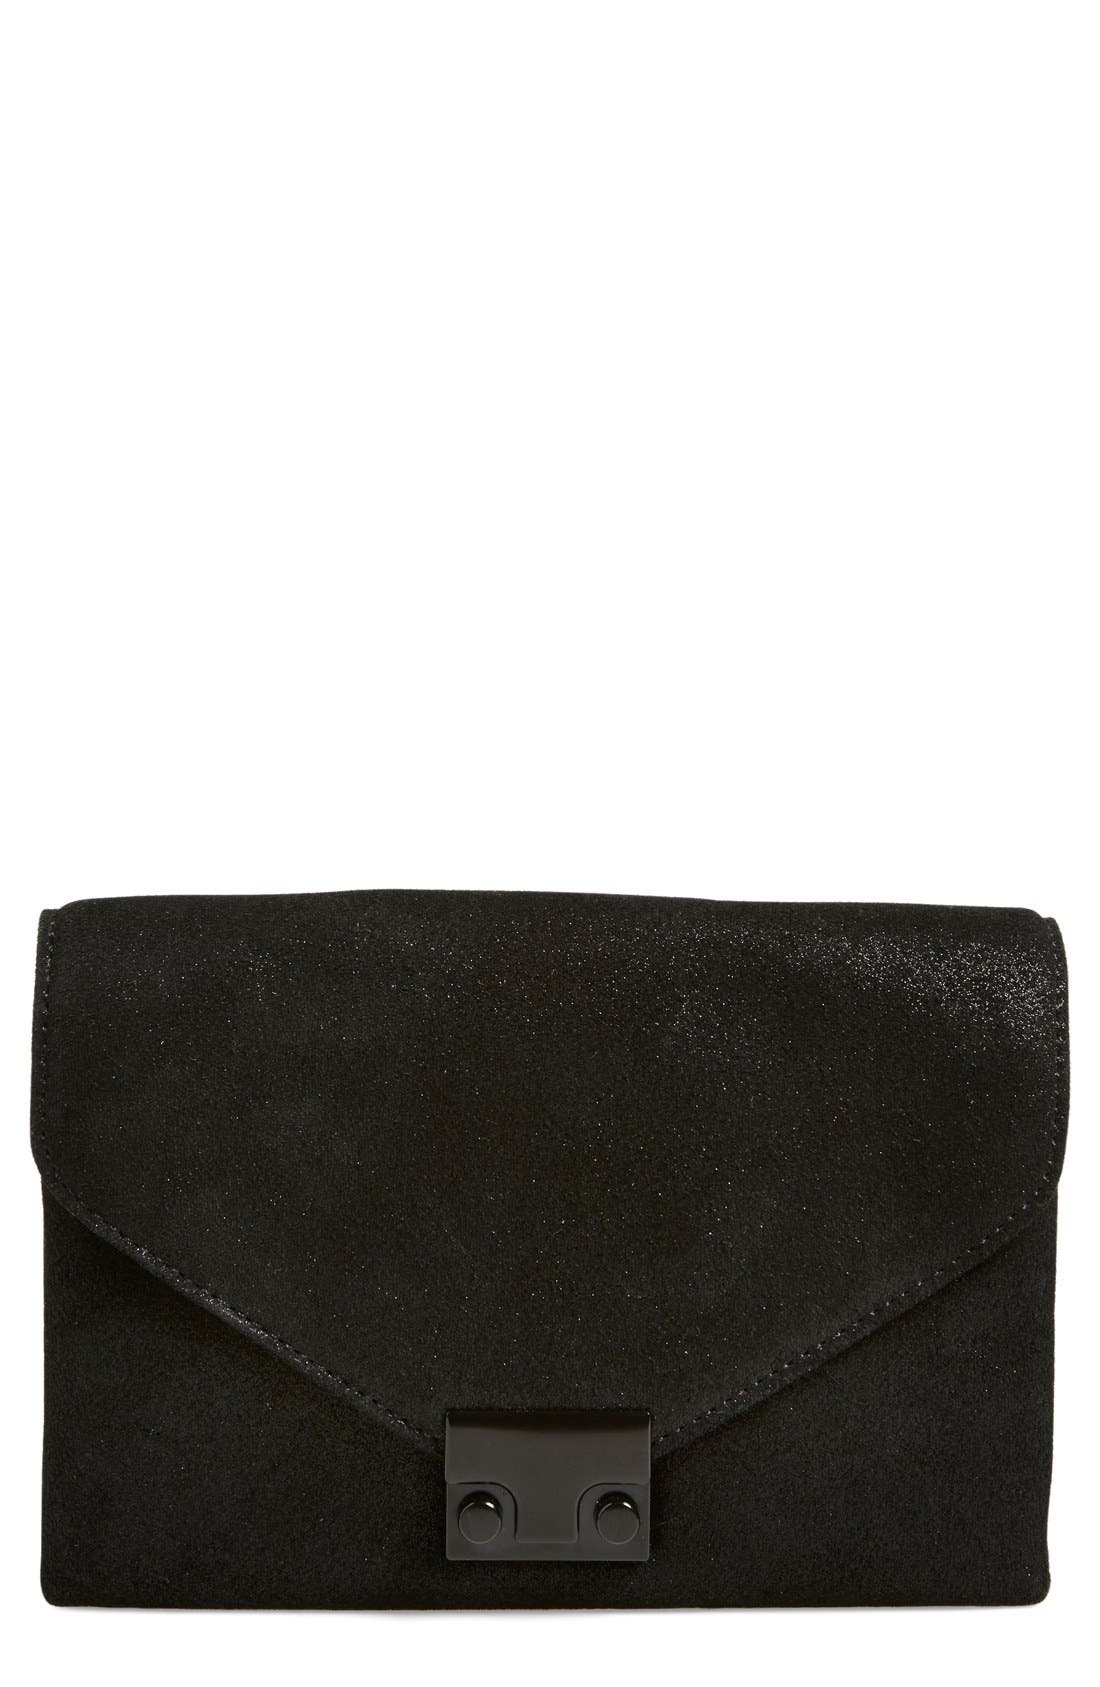 Main Image - Loeffler Randall 'Junior Lock' Leather Clutch